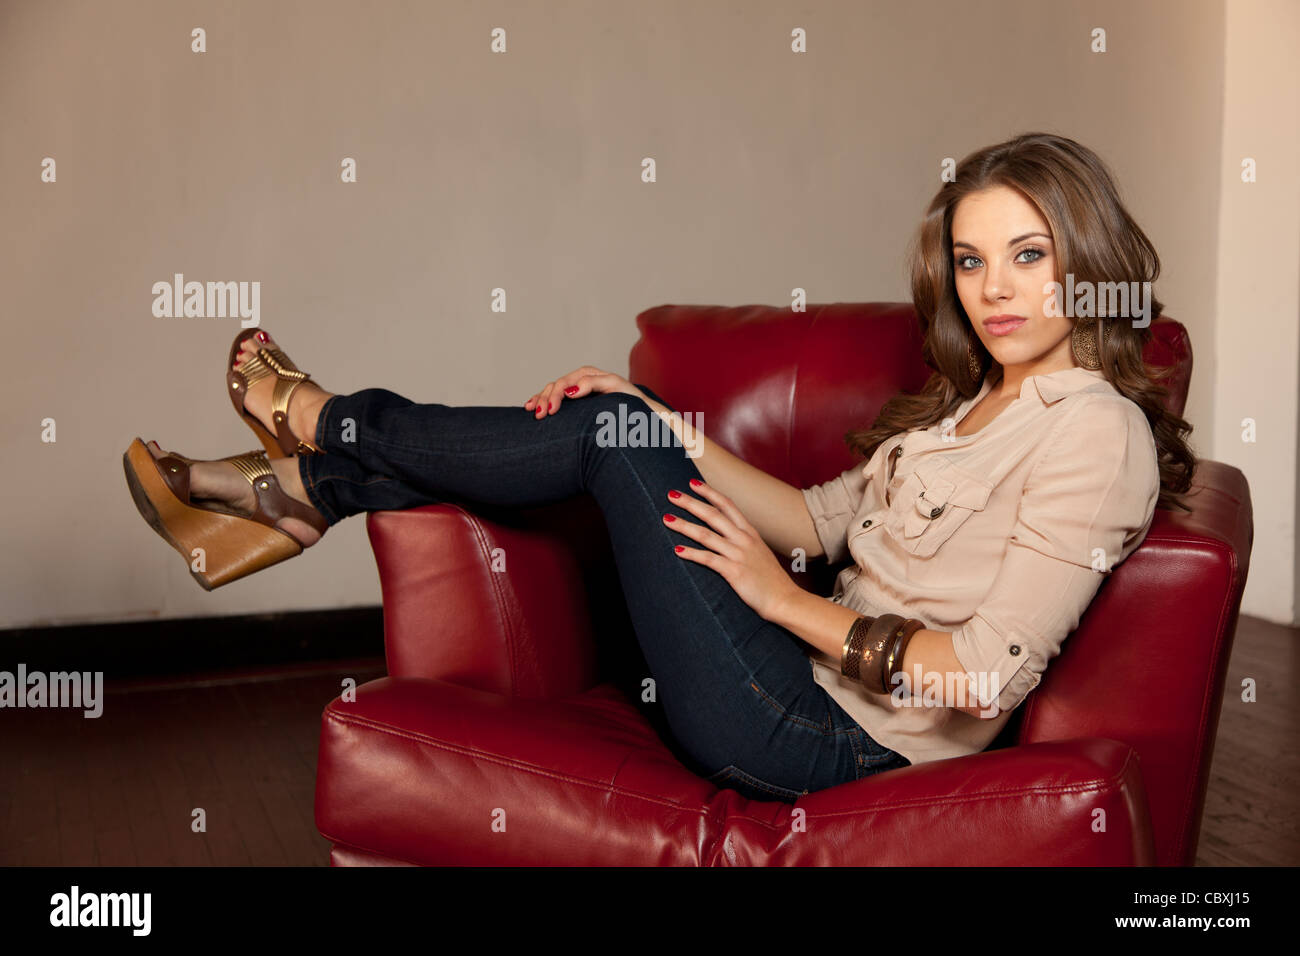 pretty caucasian woman sitting in a red leather chair stock photo